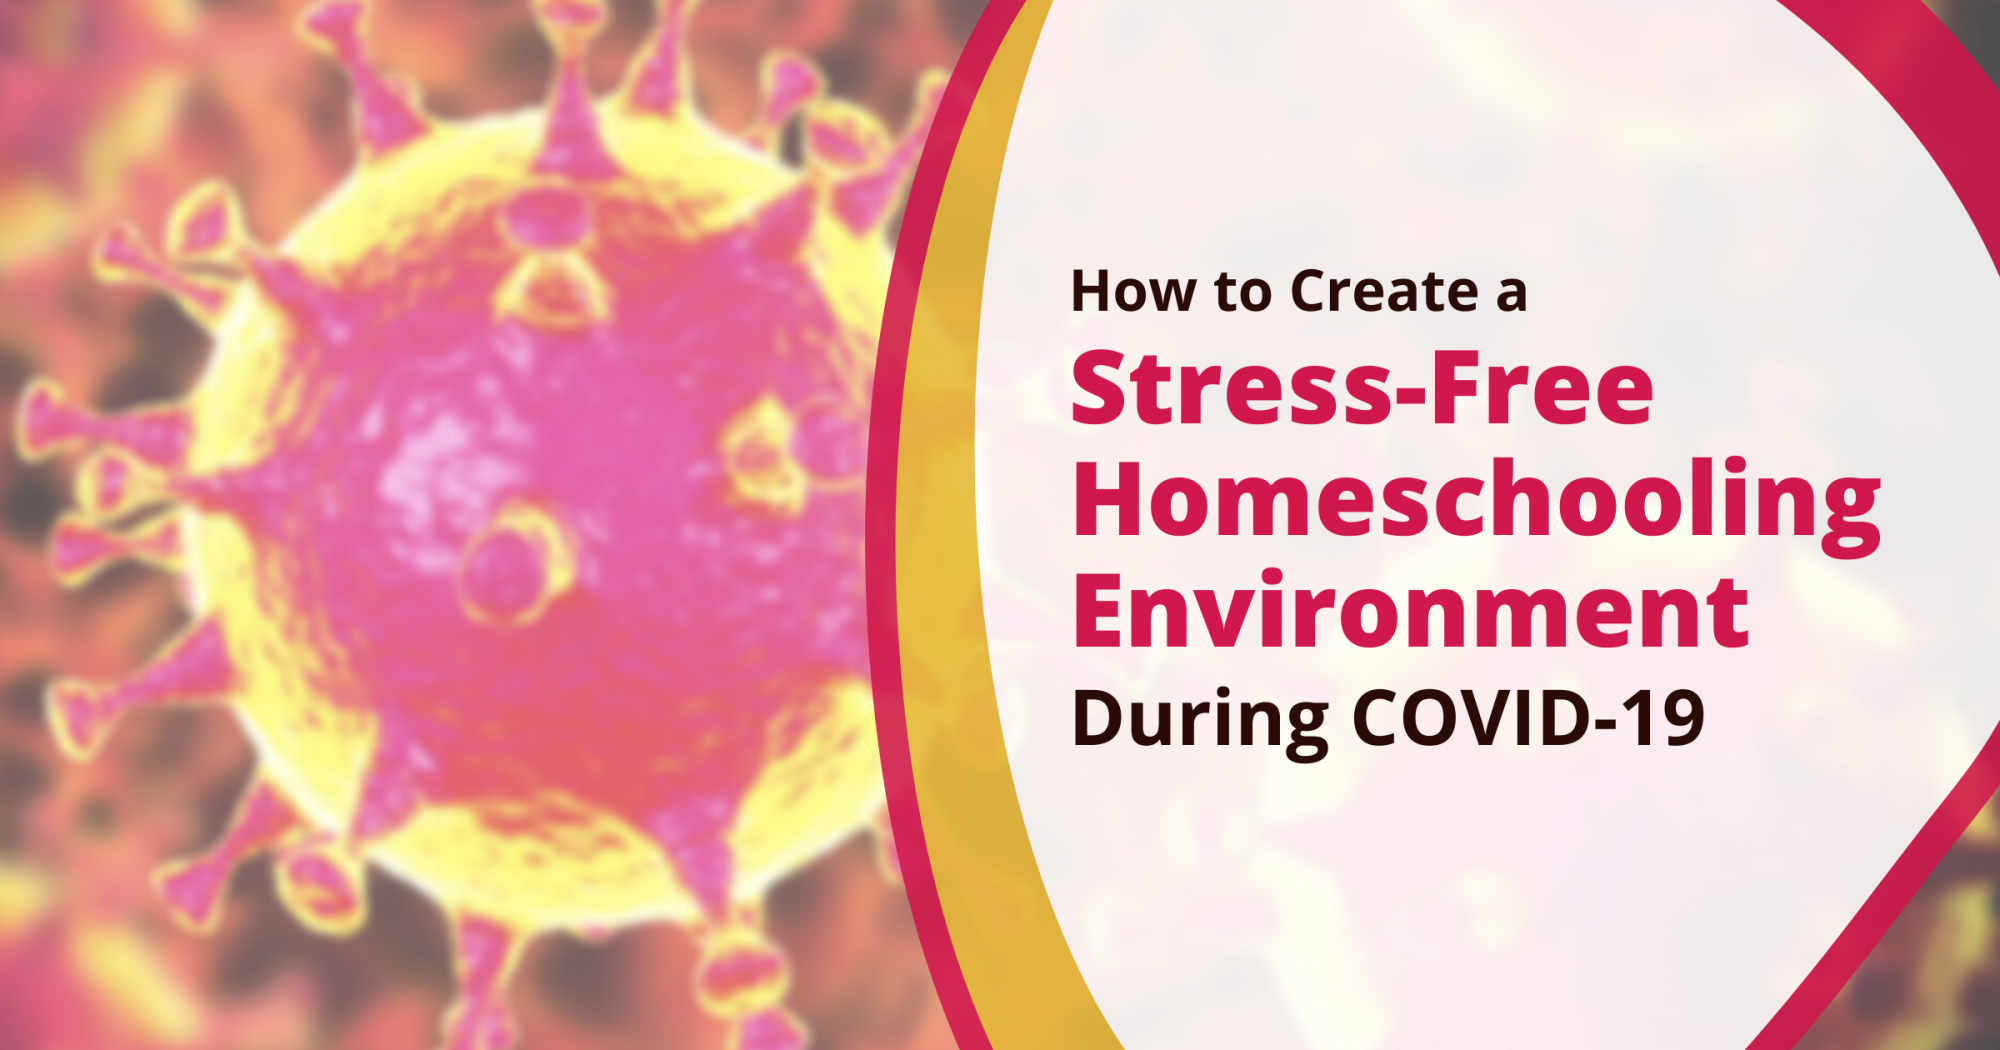 How to Create a Stress-Free Homeschool Experience During COVID-19